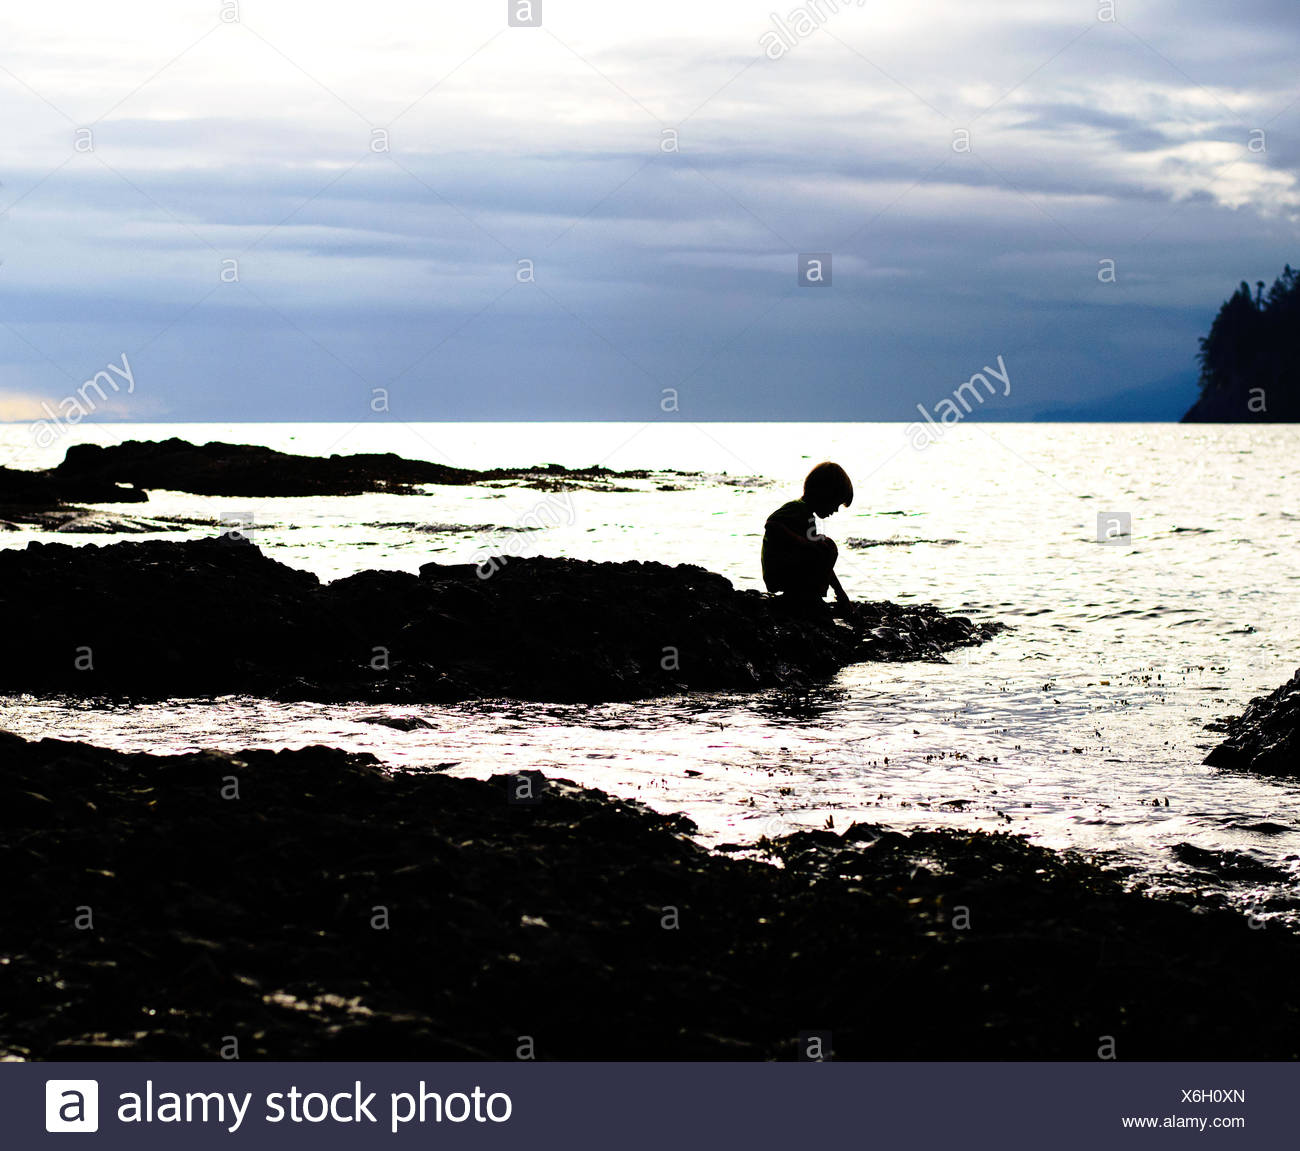 Silhouette of boy (4-5 years) at beach - Stock Image